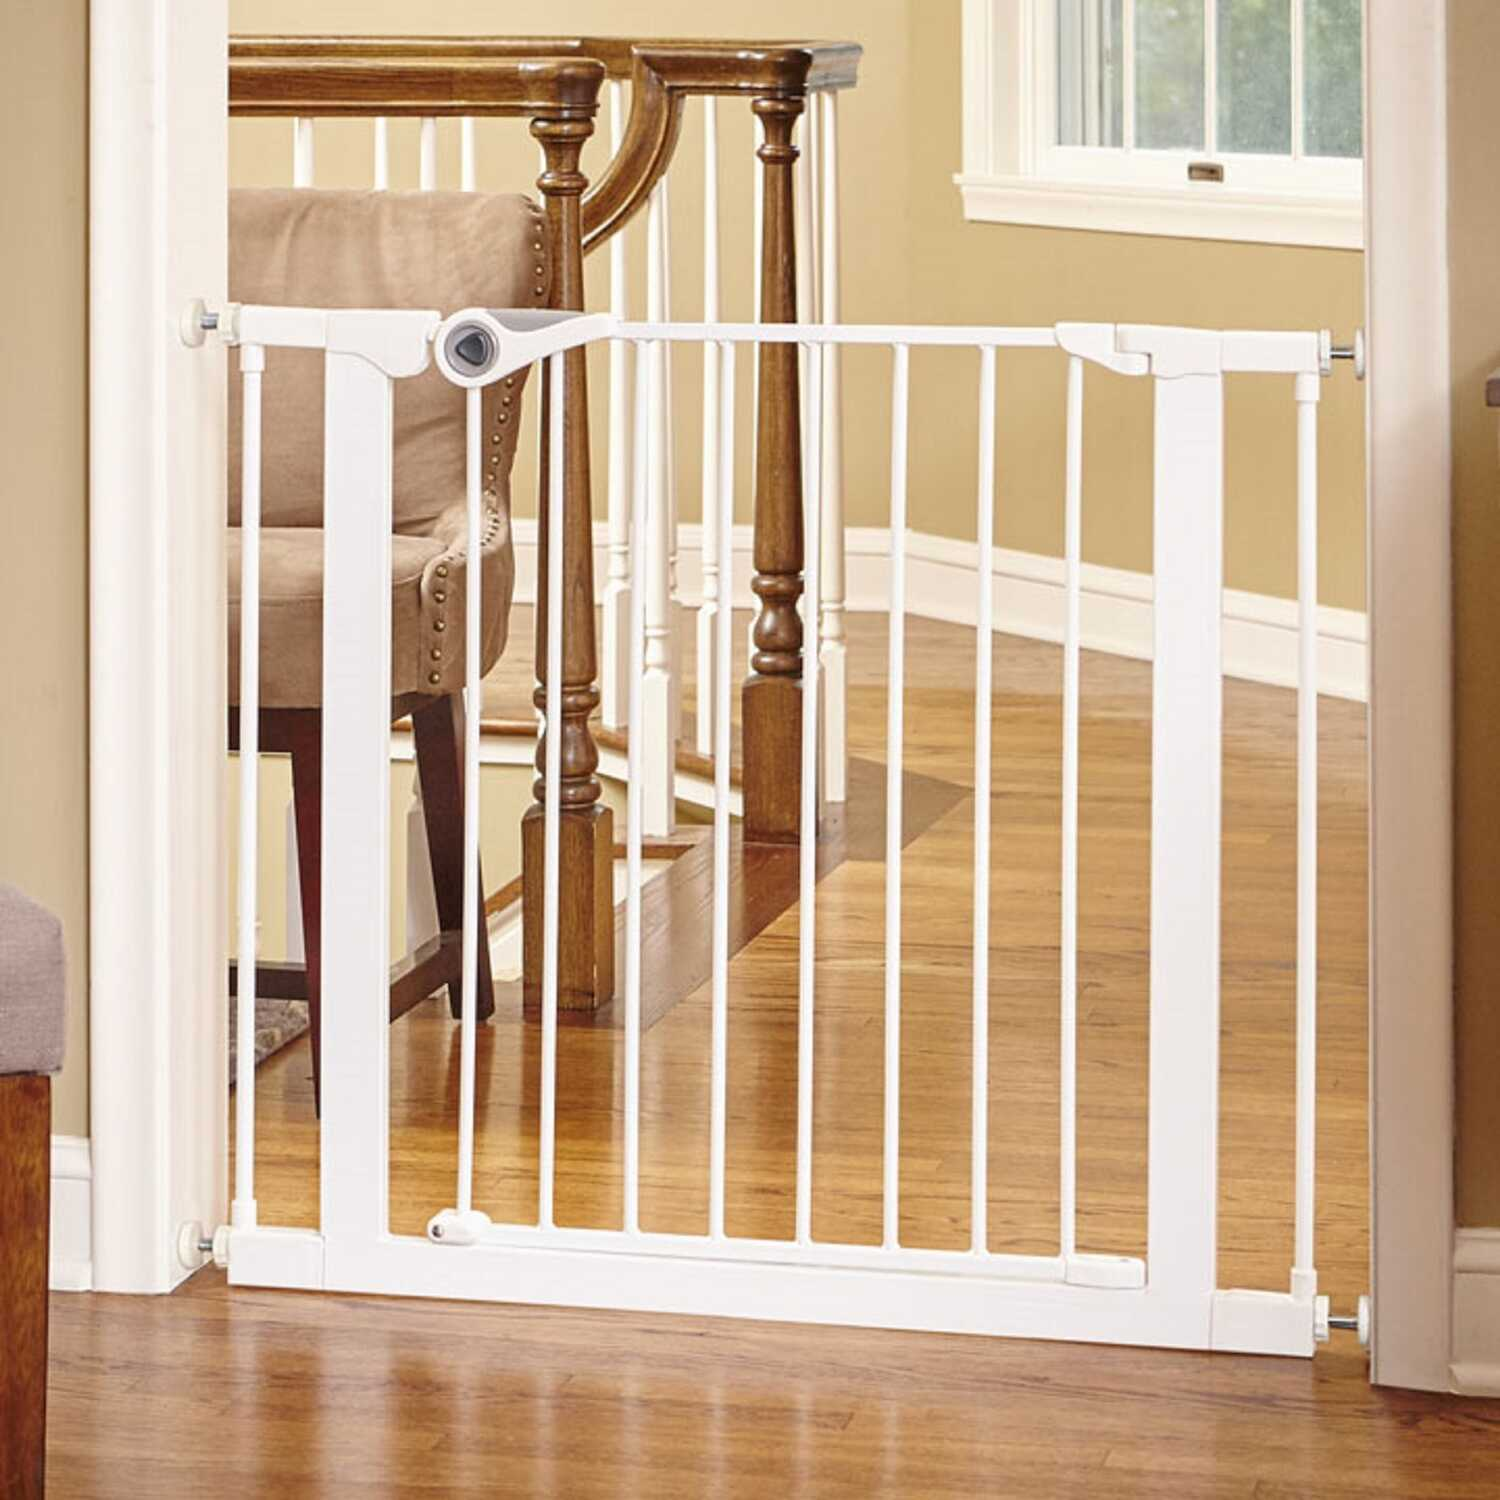 North States  White  30 in. H x 29.5-39 in. W Metal  Child Safety Gate